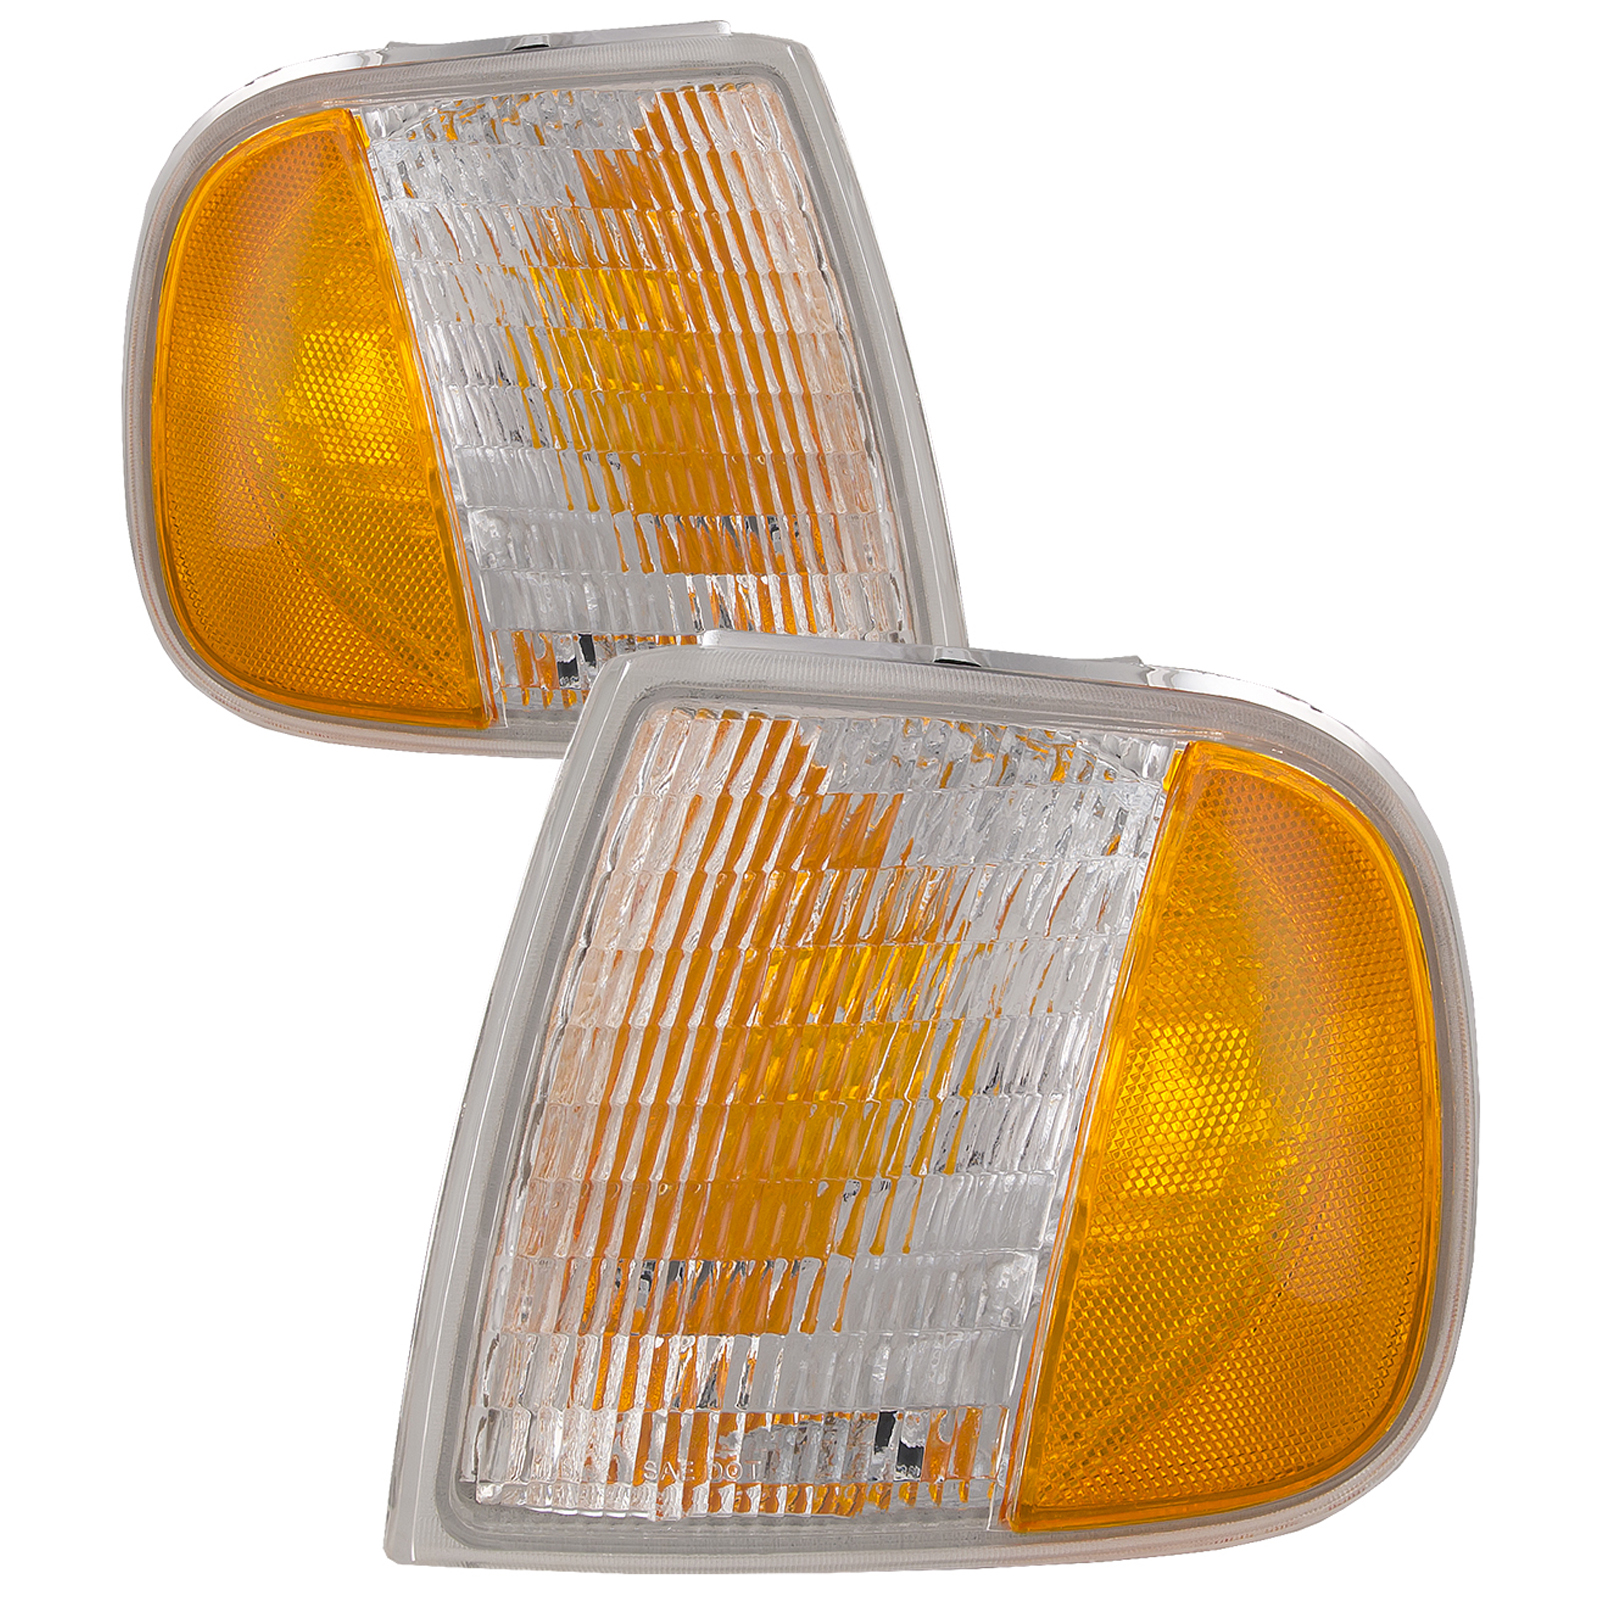 HEADLIGHTSDEPOT Front Park Corner Signal Lights Set Left Right Compatible with 2008-2012 Jeep Liberty